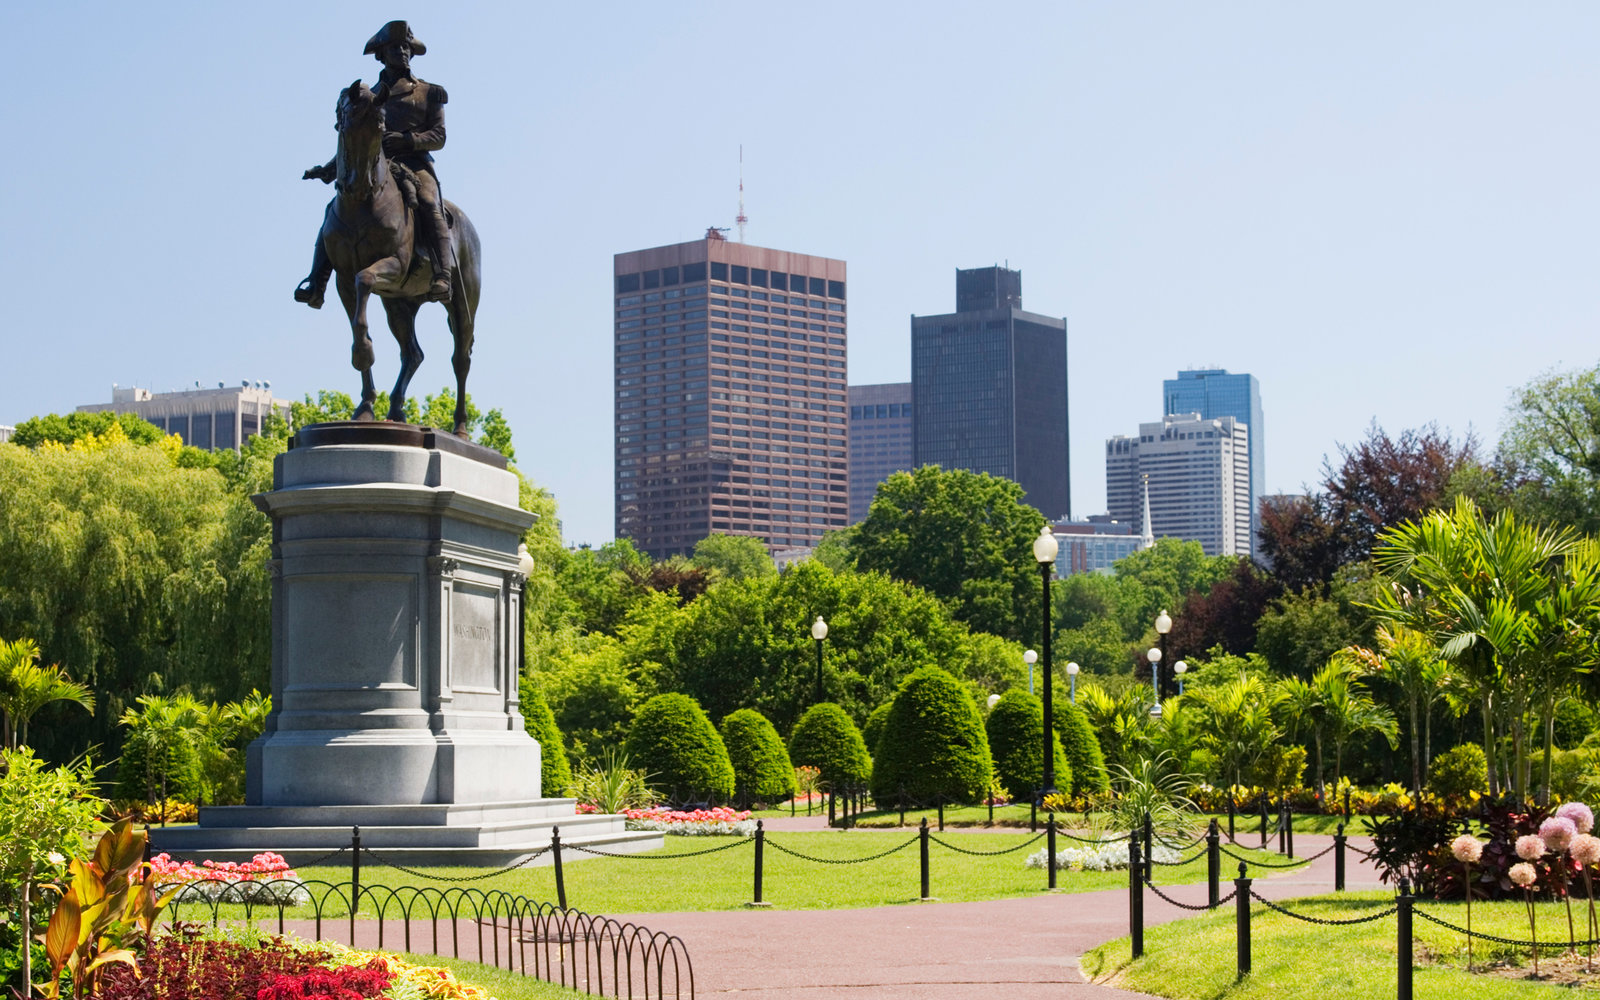 5. Boston, Massachusetts